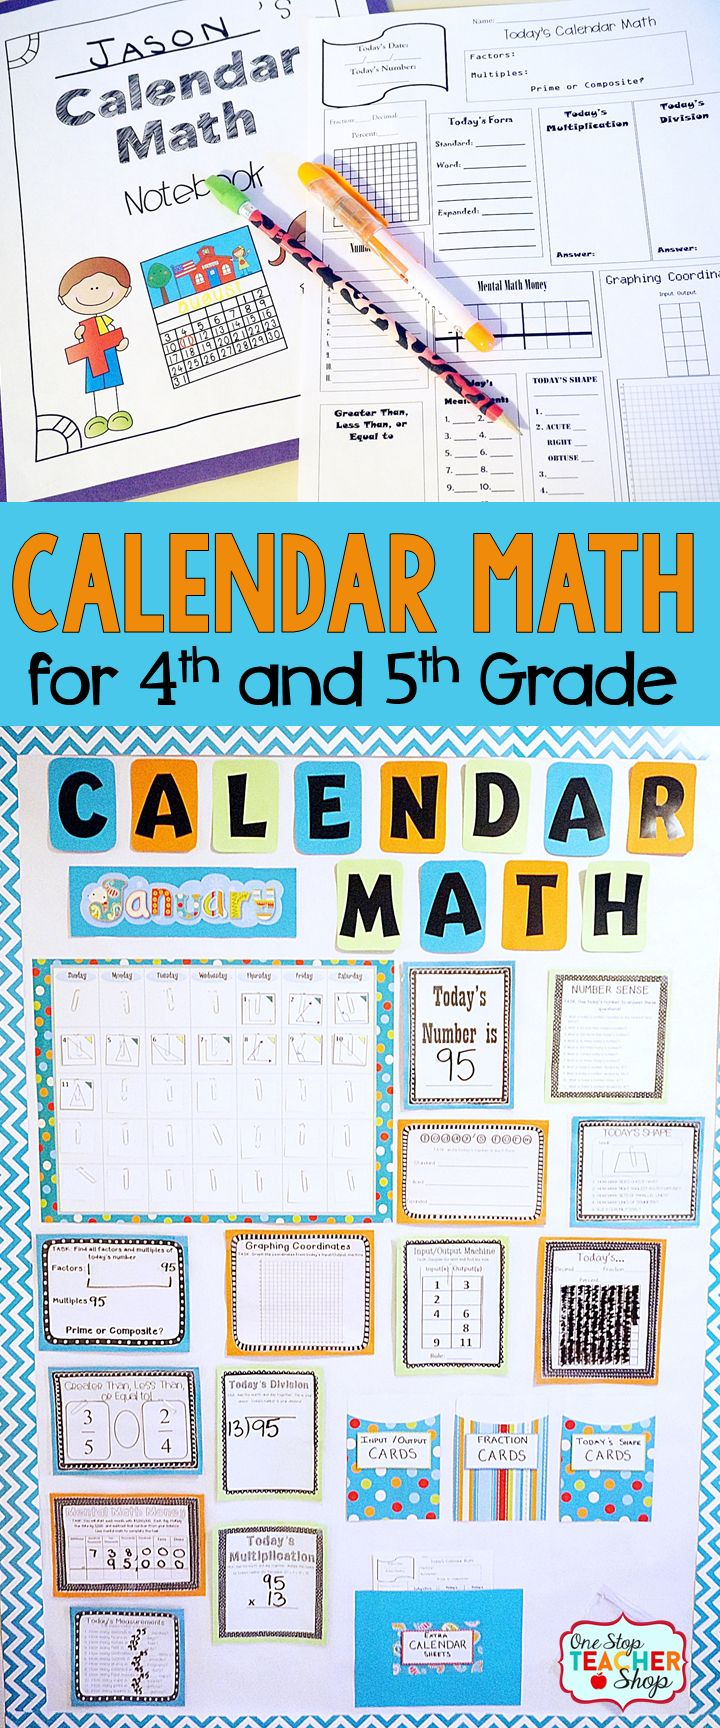 420 best Morning Meeting images on Pinterest | Teaching math, Math ...